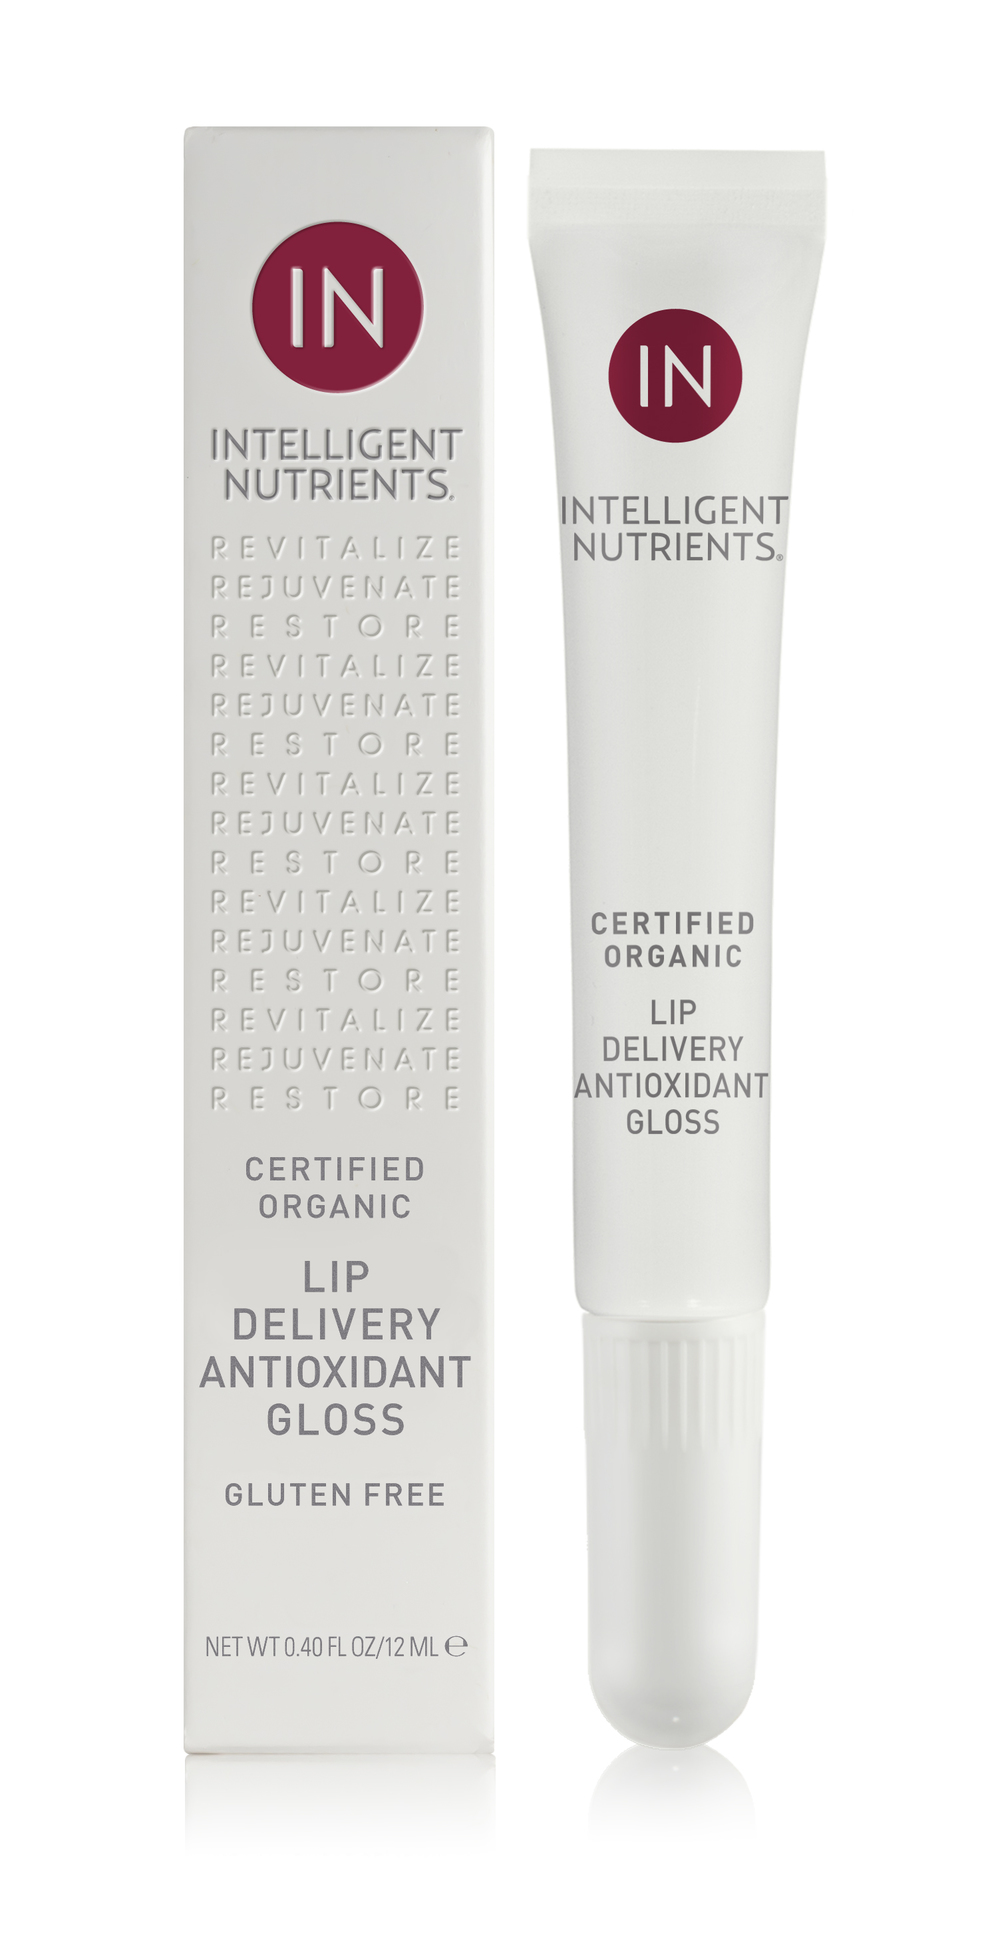 Lip Delivery Antioxidant Gloss - Purple Maize (DKK190/12g)